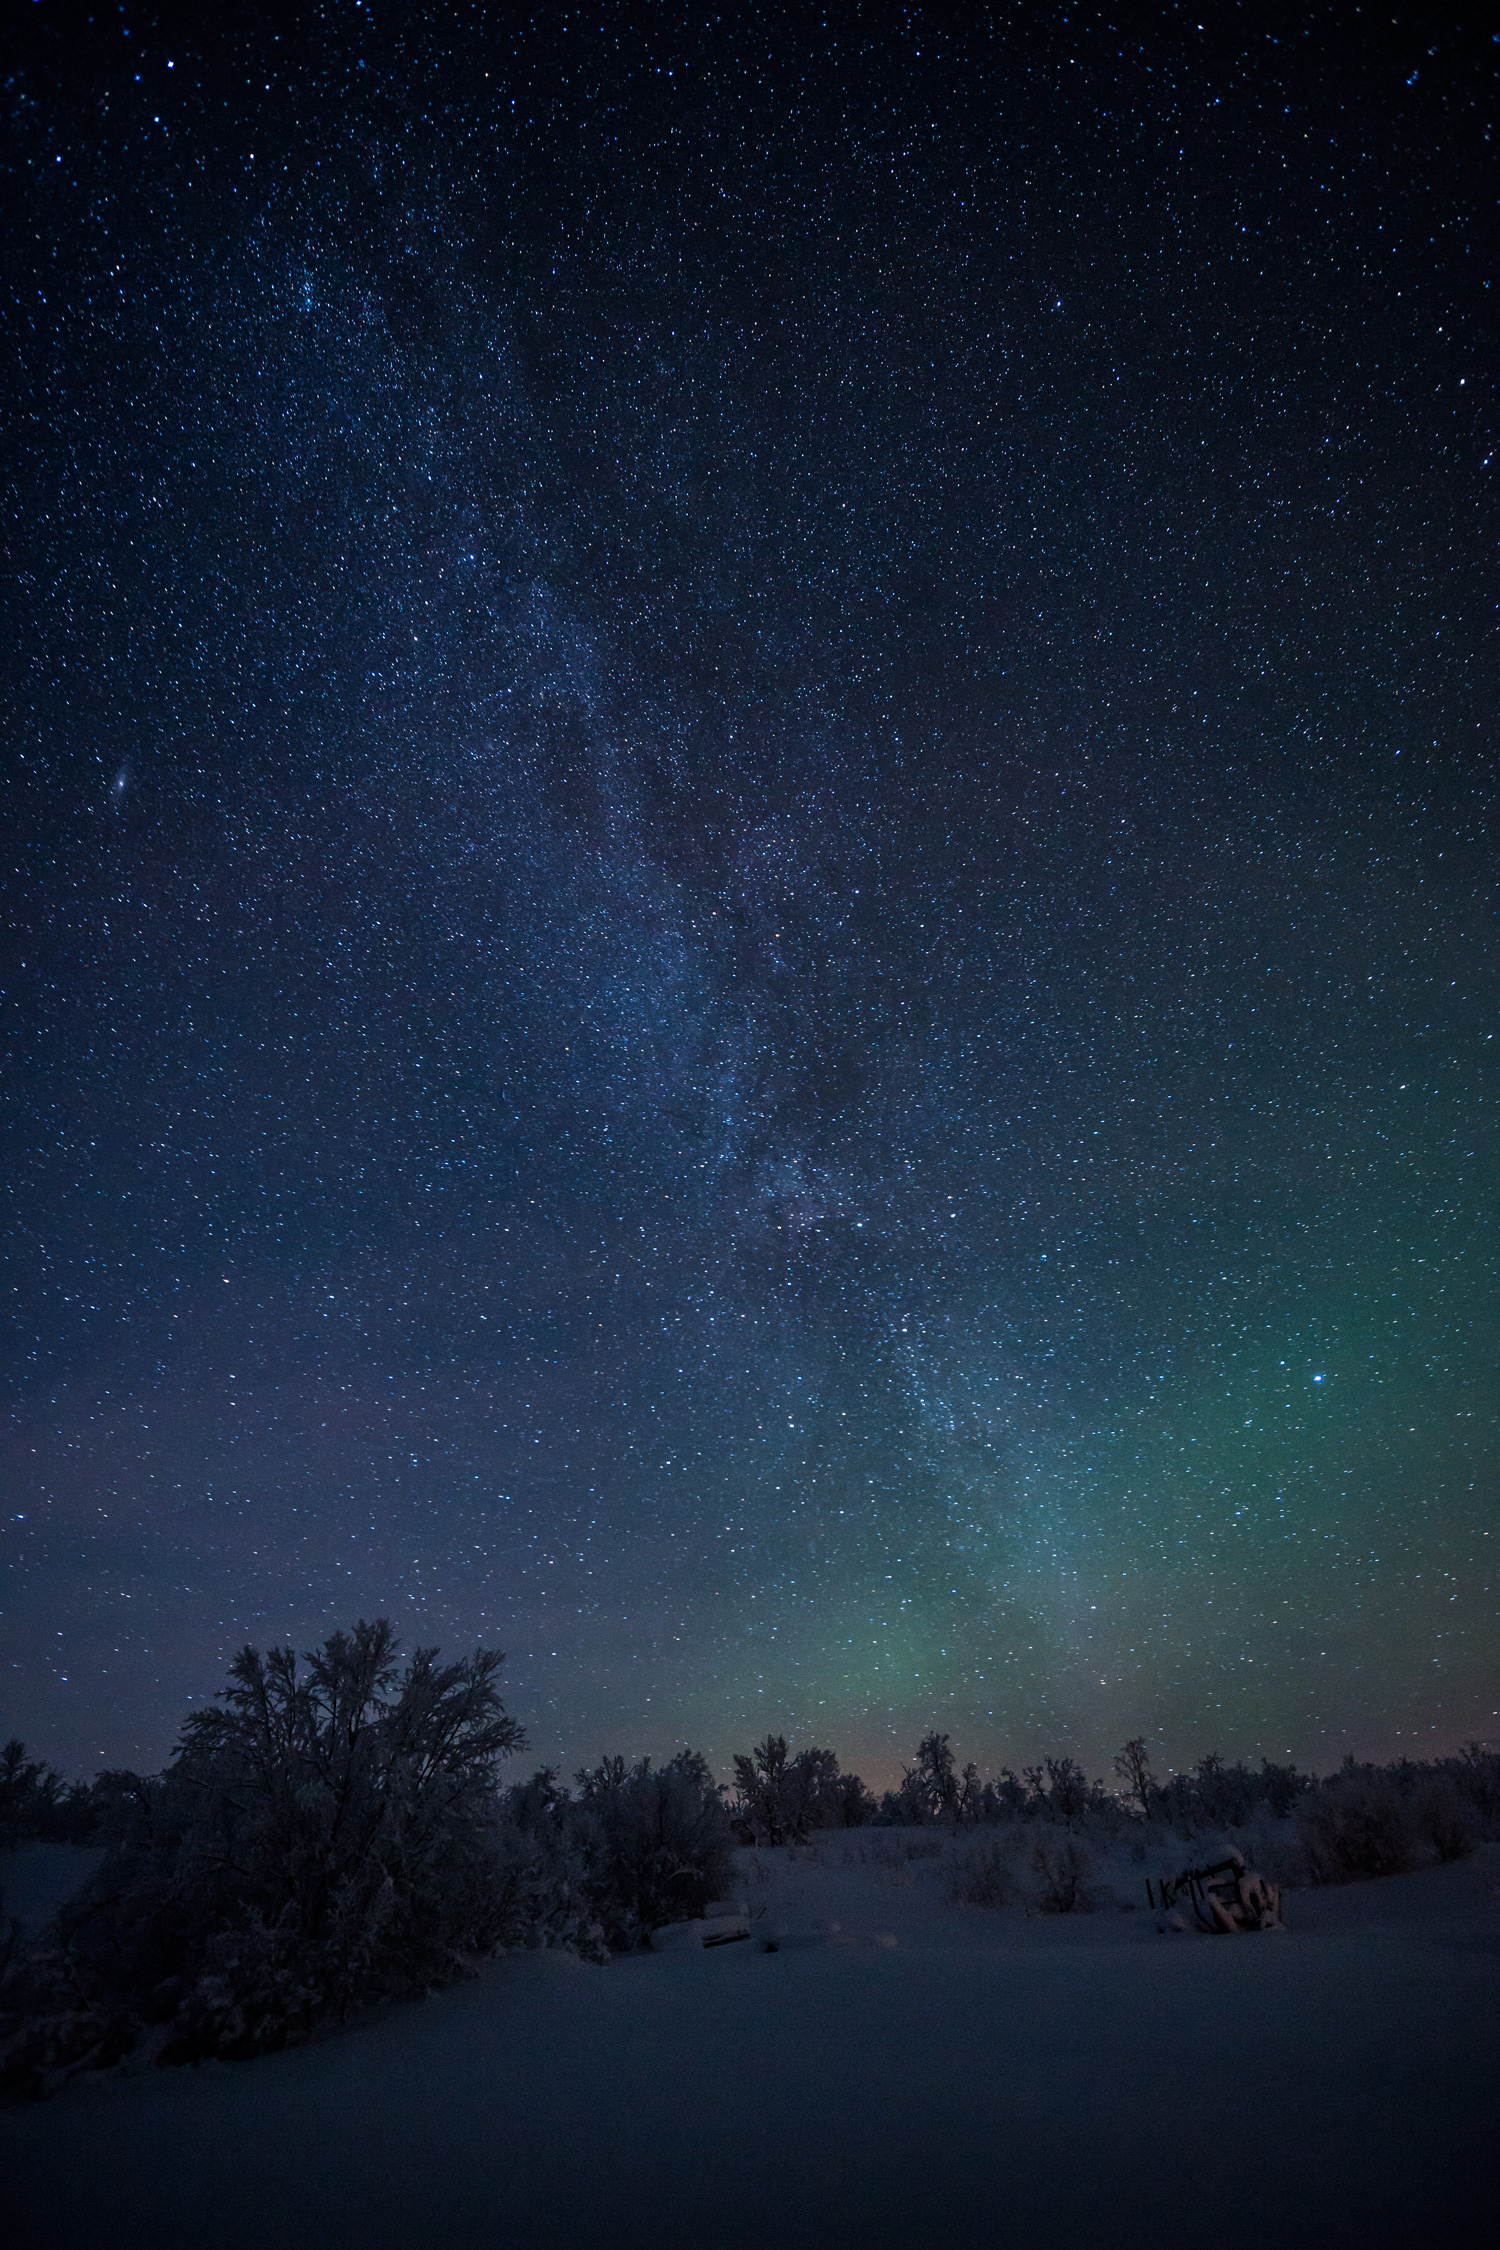 One for the star gazers. The Milky Way, crystal clear in the pitch black skies with a little bit of Aurora below.